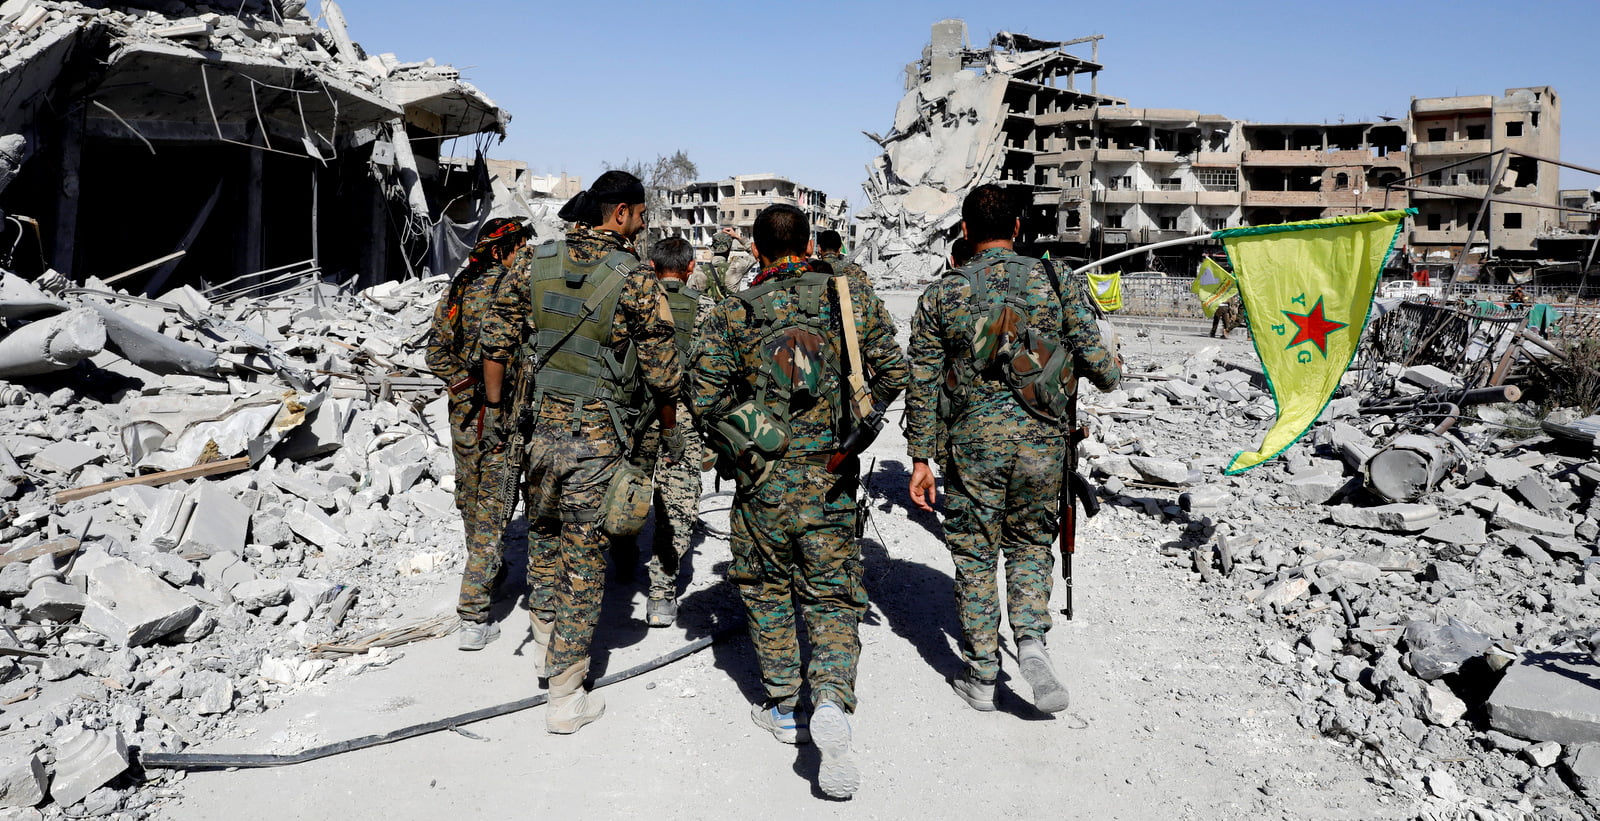 Syrian Democratic Forces Fighters walk past the ruins of destroyed buildings near the National Hospital after Raqqa was liberated from the Islamic State (ISIS), in Raqqa, Syria October 17, 2017. (Erik De Castro/Reuters)